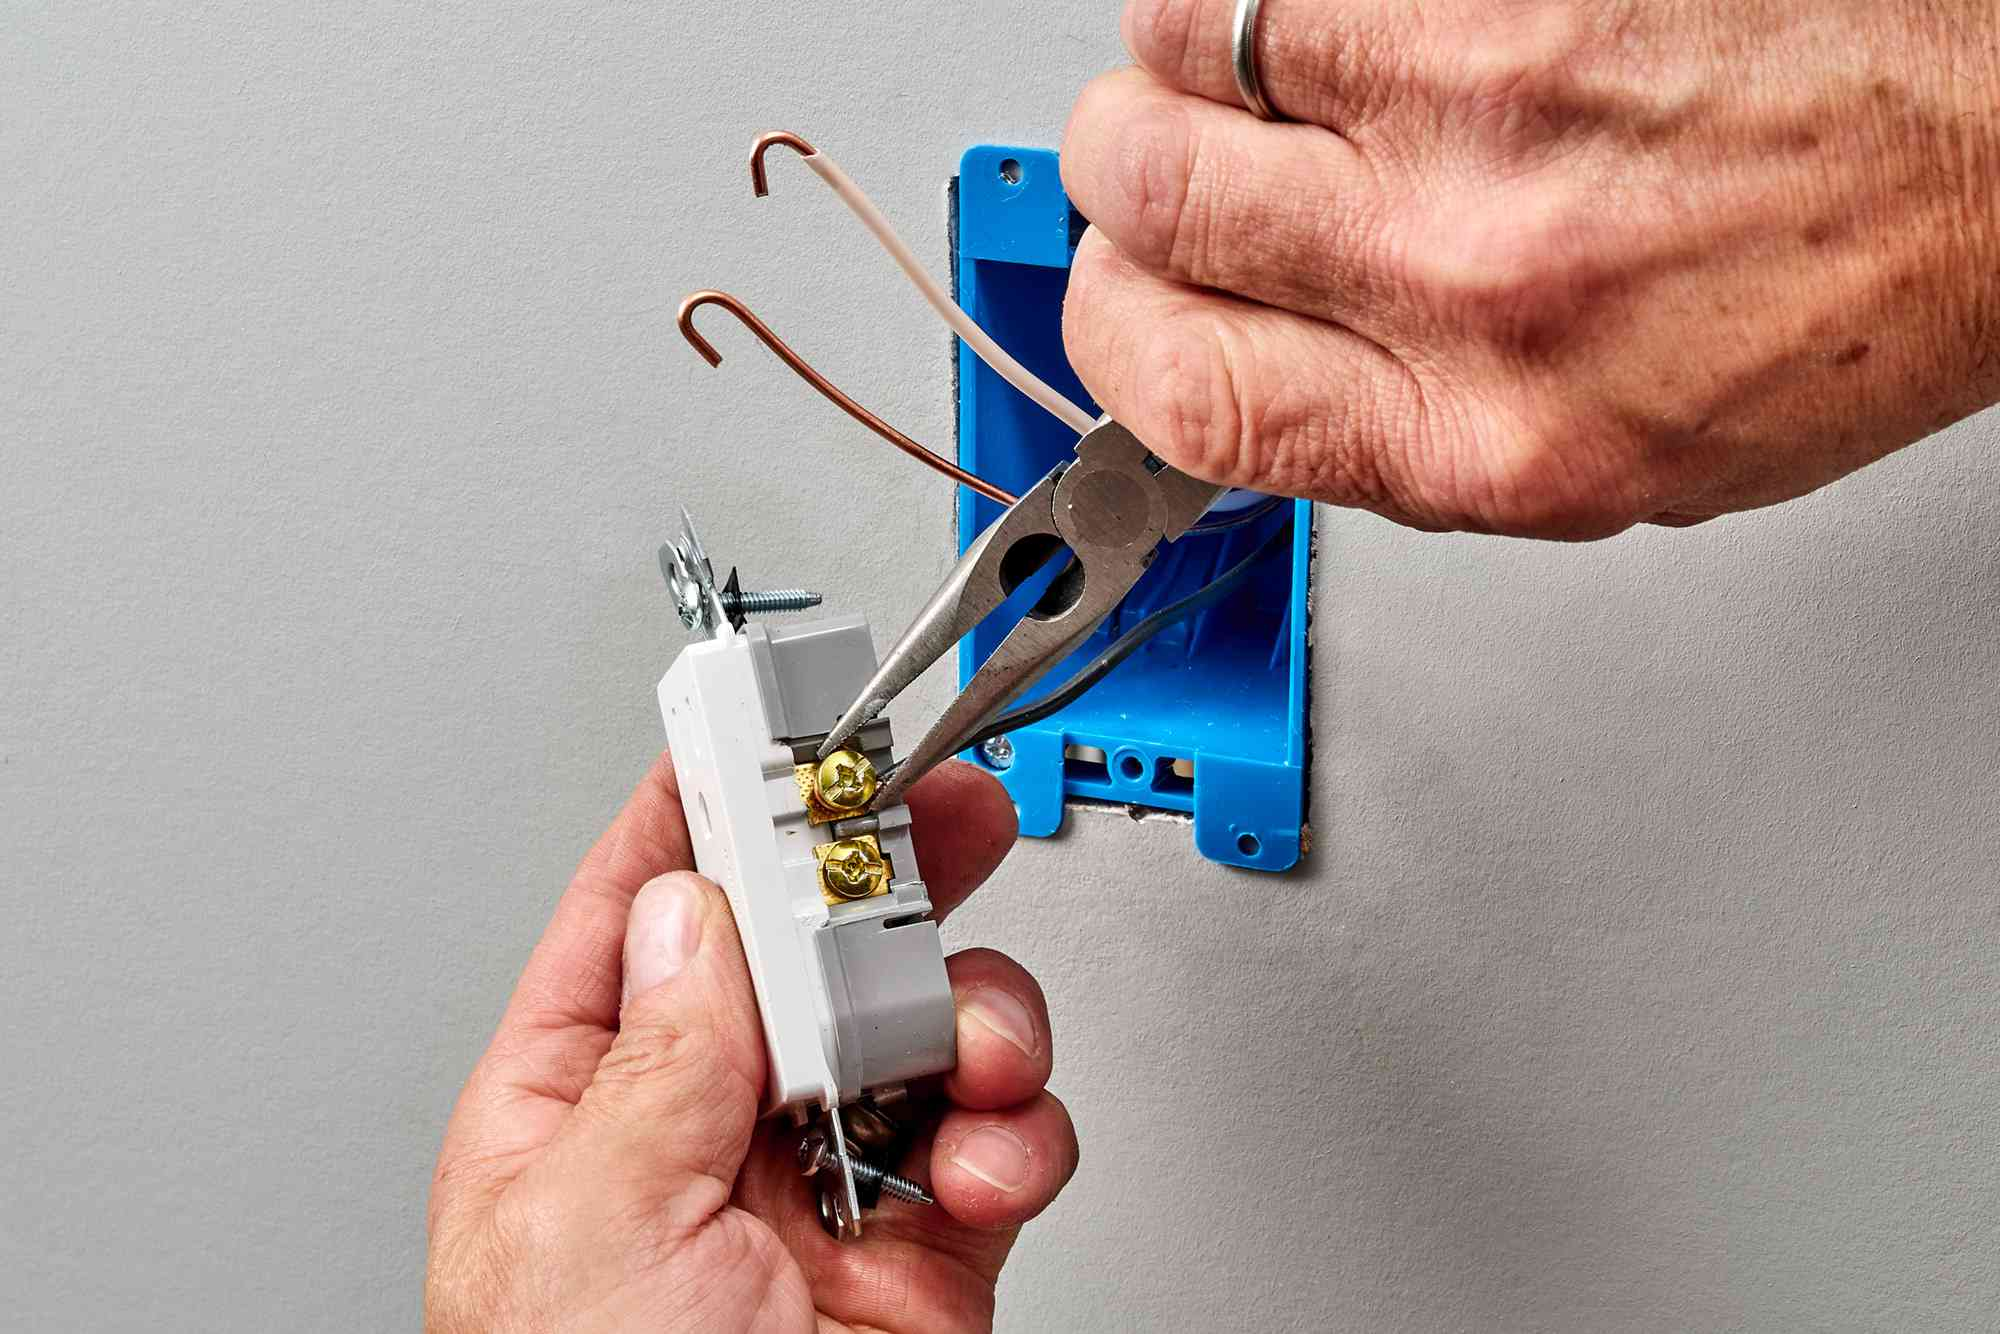 Needlenose pliers securing hooked wires around shank of screw